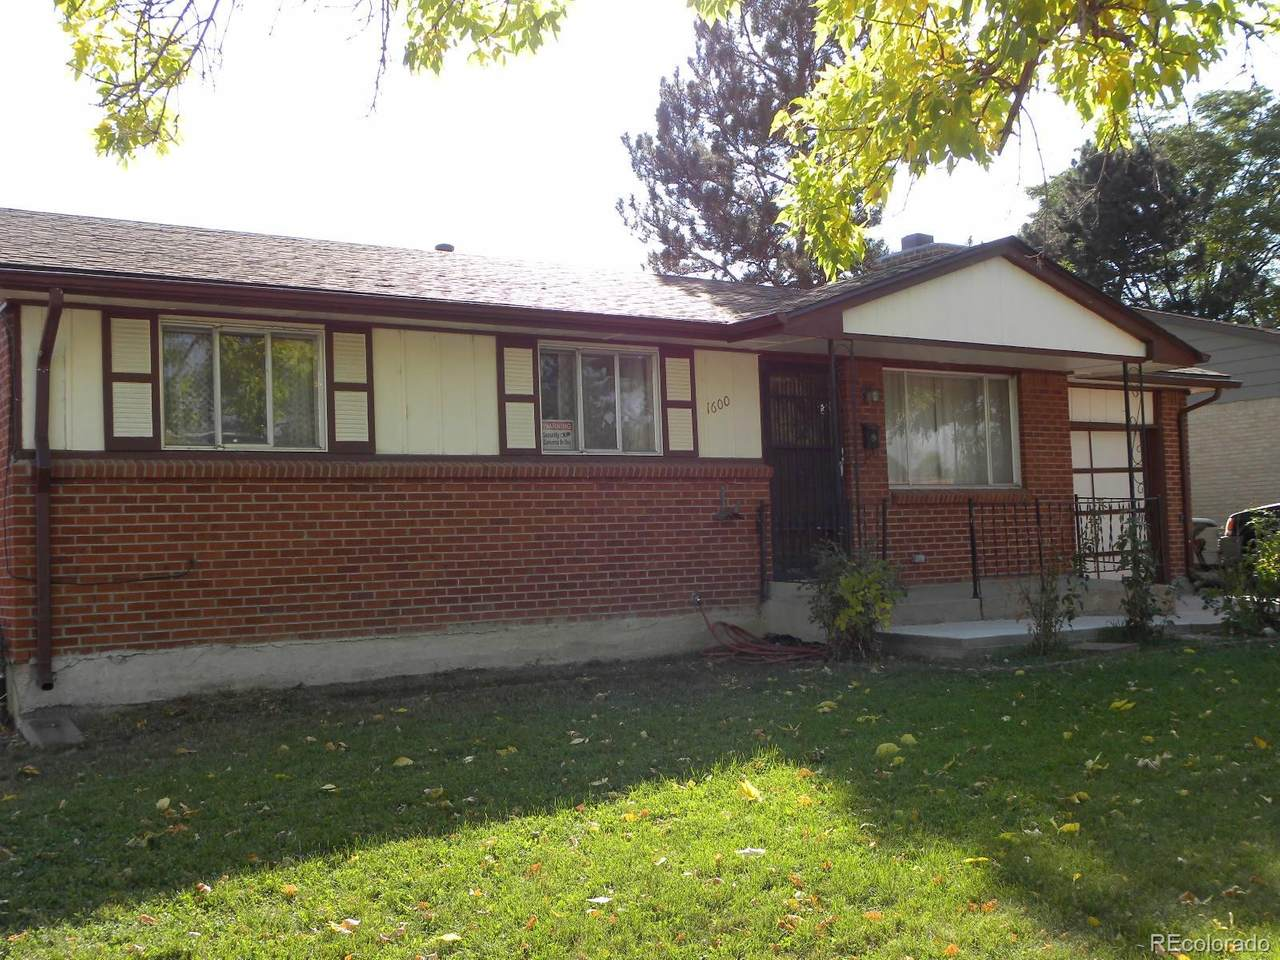 1600 6th Avenue - Photo 1